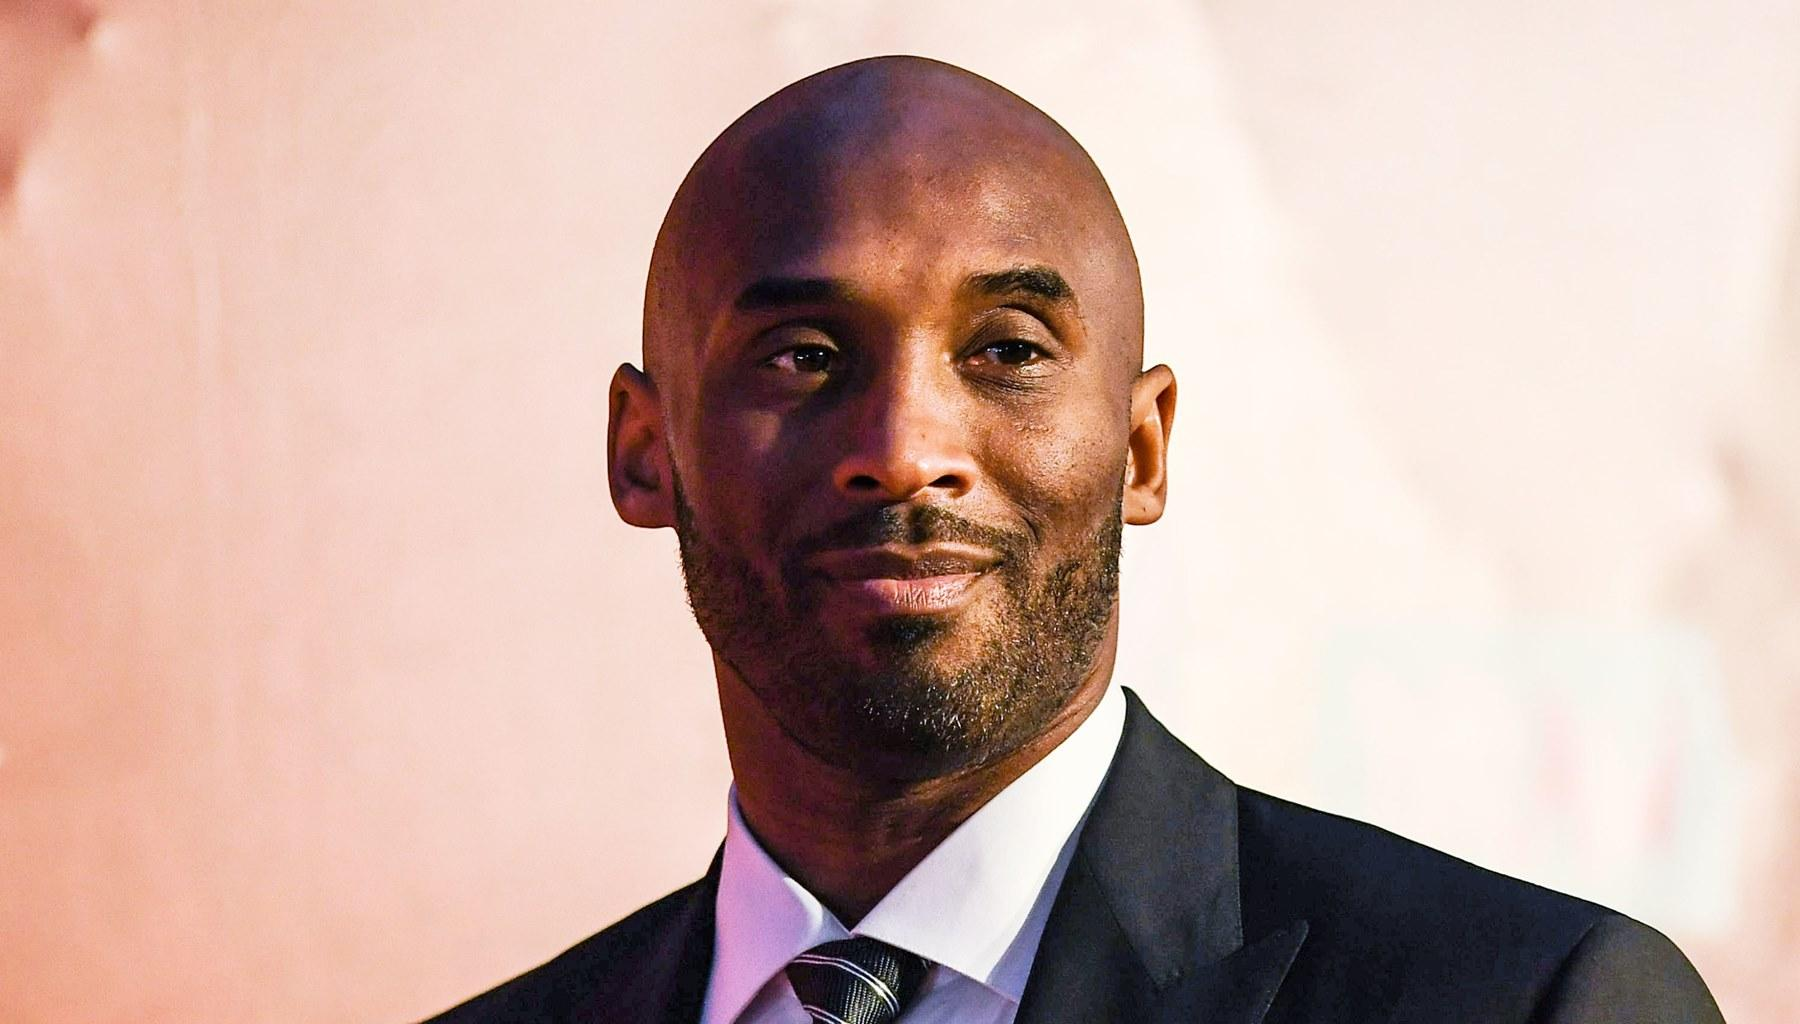 Kobe Bryant's Wife, Vanessa Bryant, Makes A Change To Her Instagram Page After Sharing This Photo And Personal Message